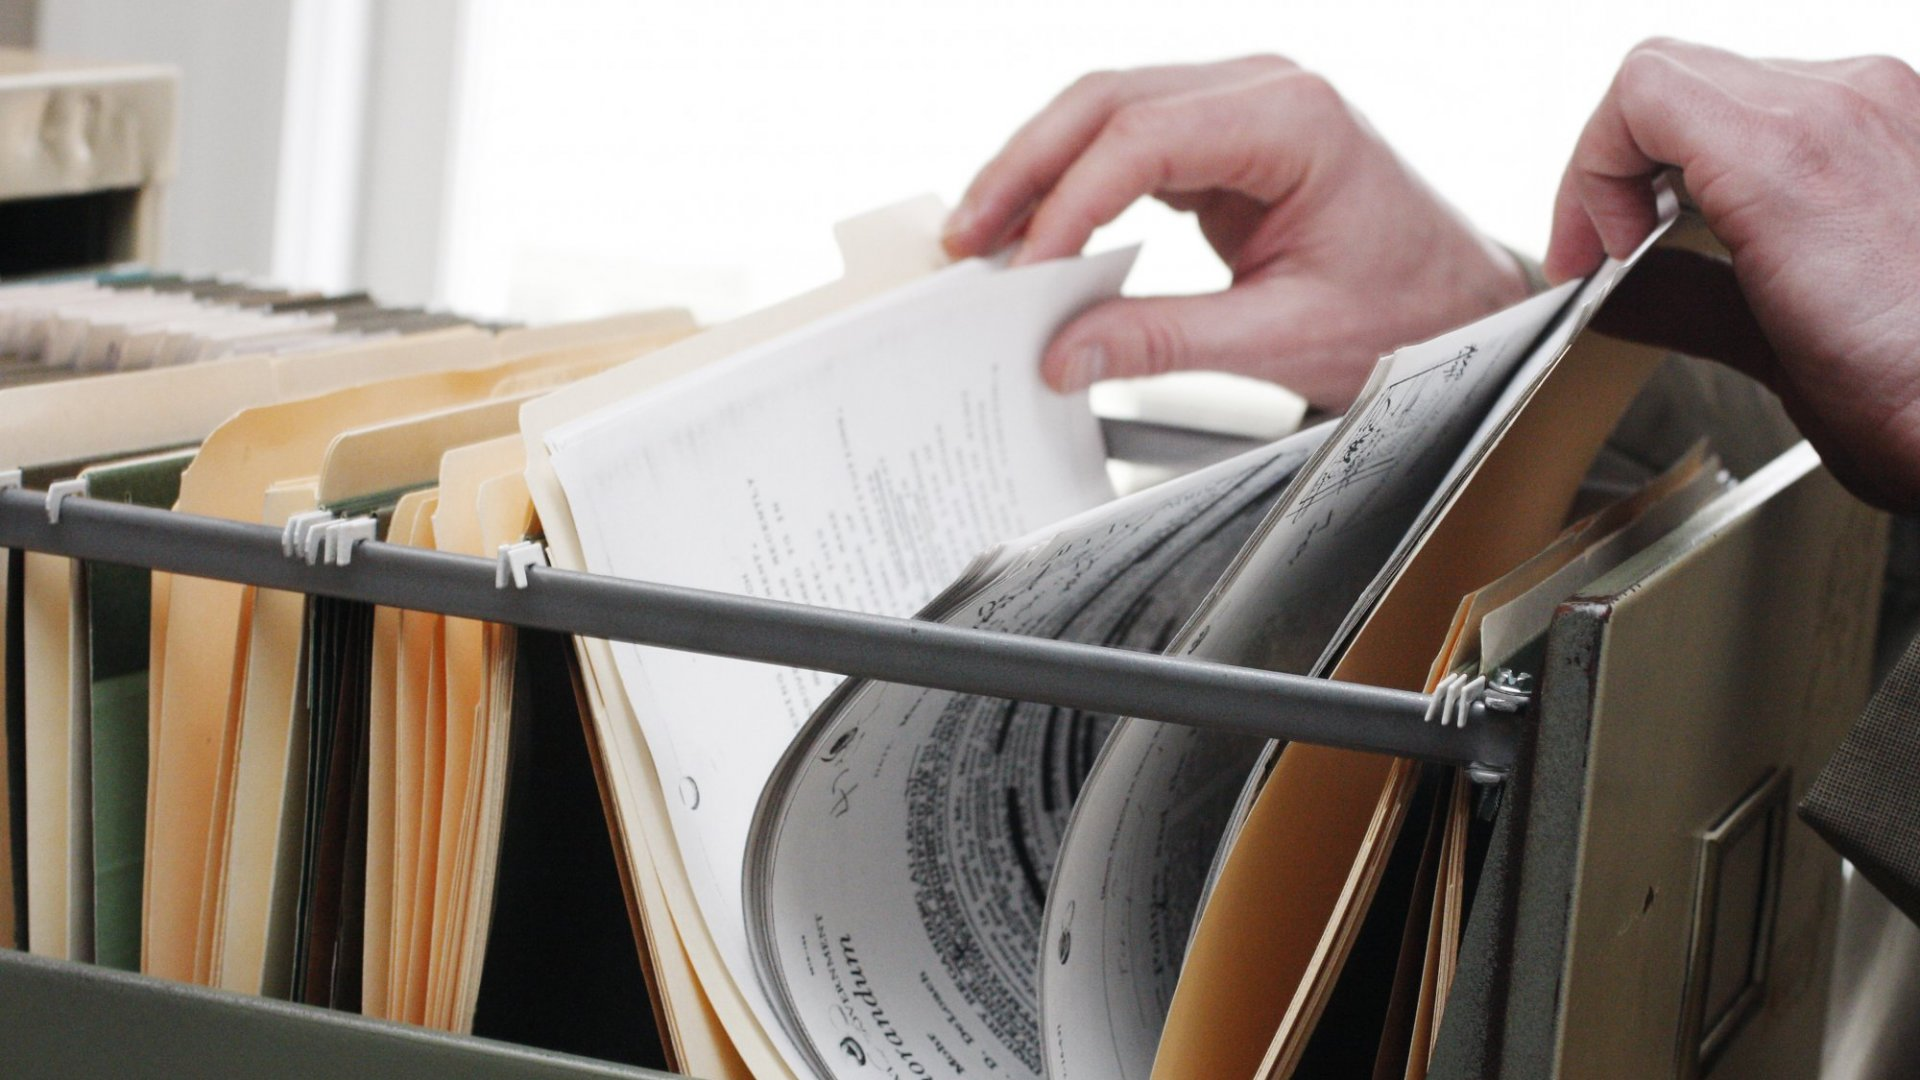 Why Disruptive Startups Should Think About Requesting Public Records